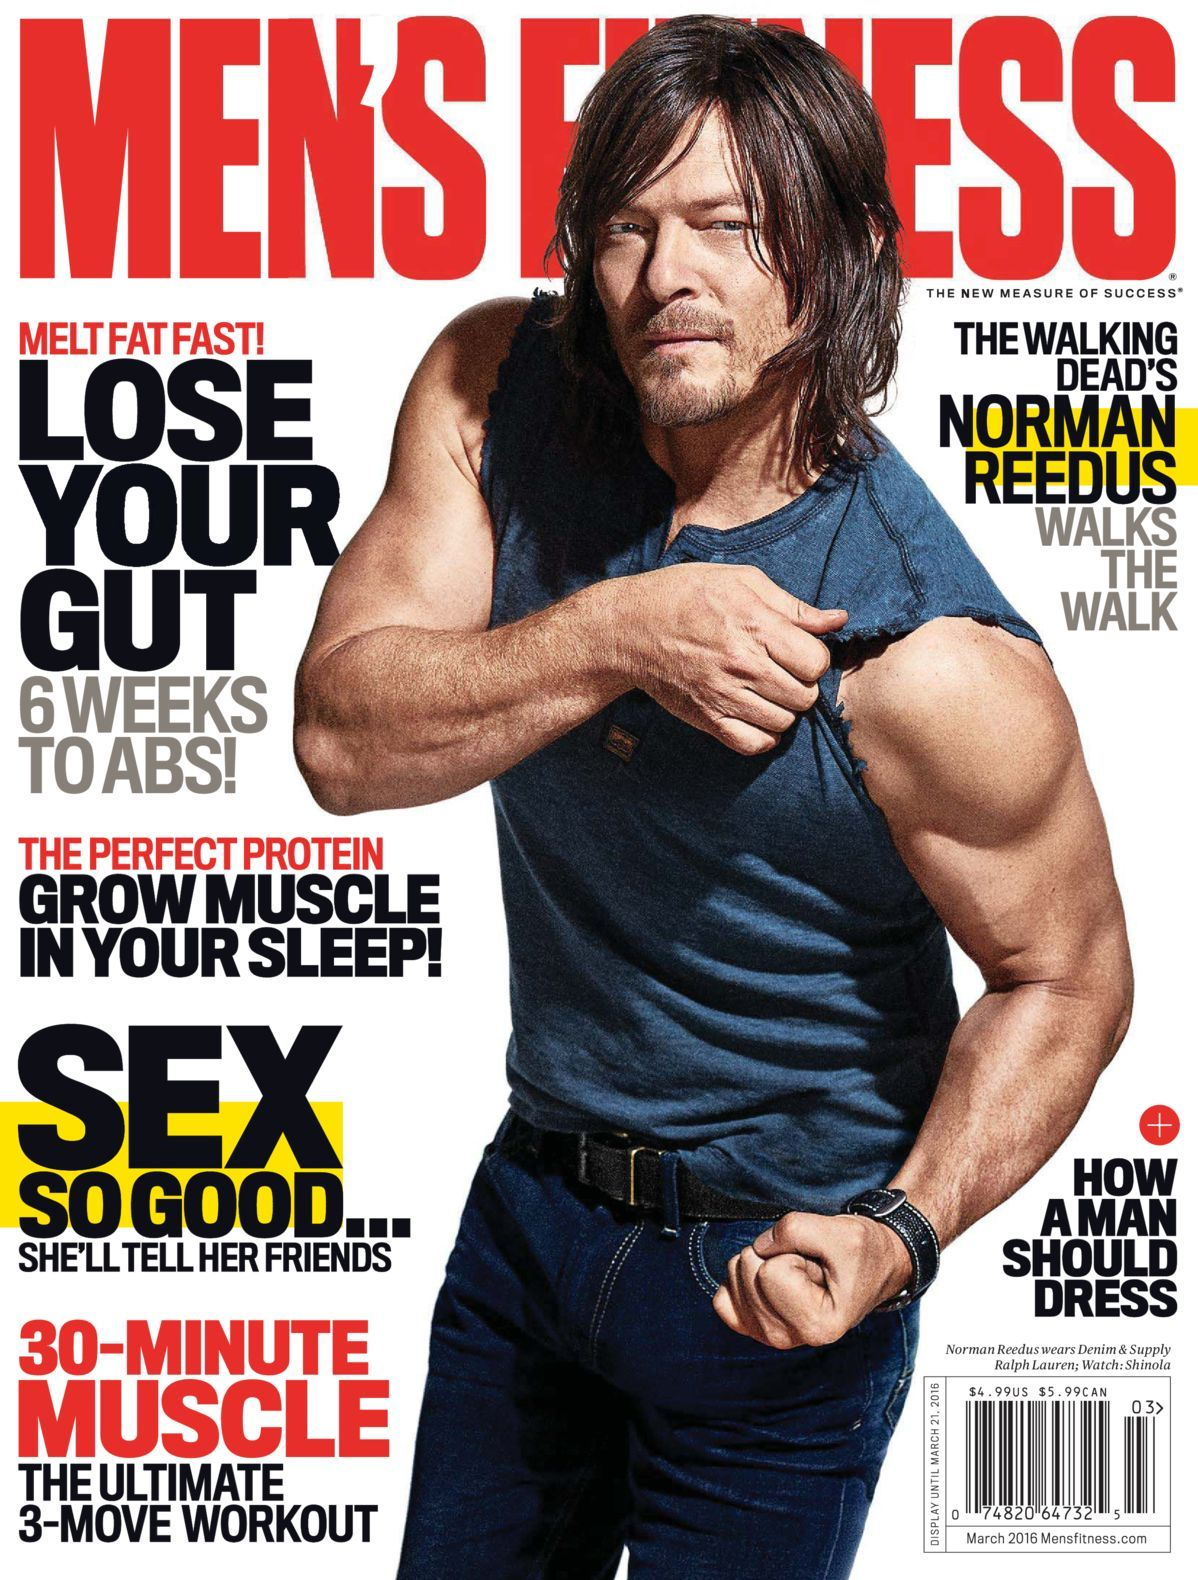 1a850ea68dc Free Download Men s Fitness (US)  Magazine - March 2016. Melt Fat Fast   Lose your gut 6 weeks to ABS!